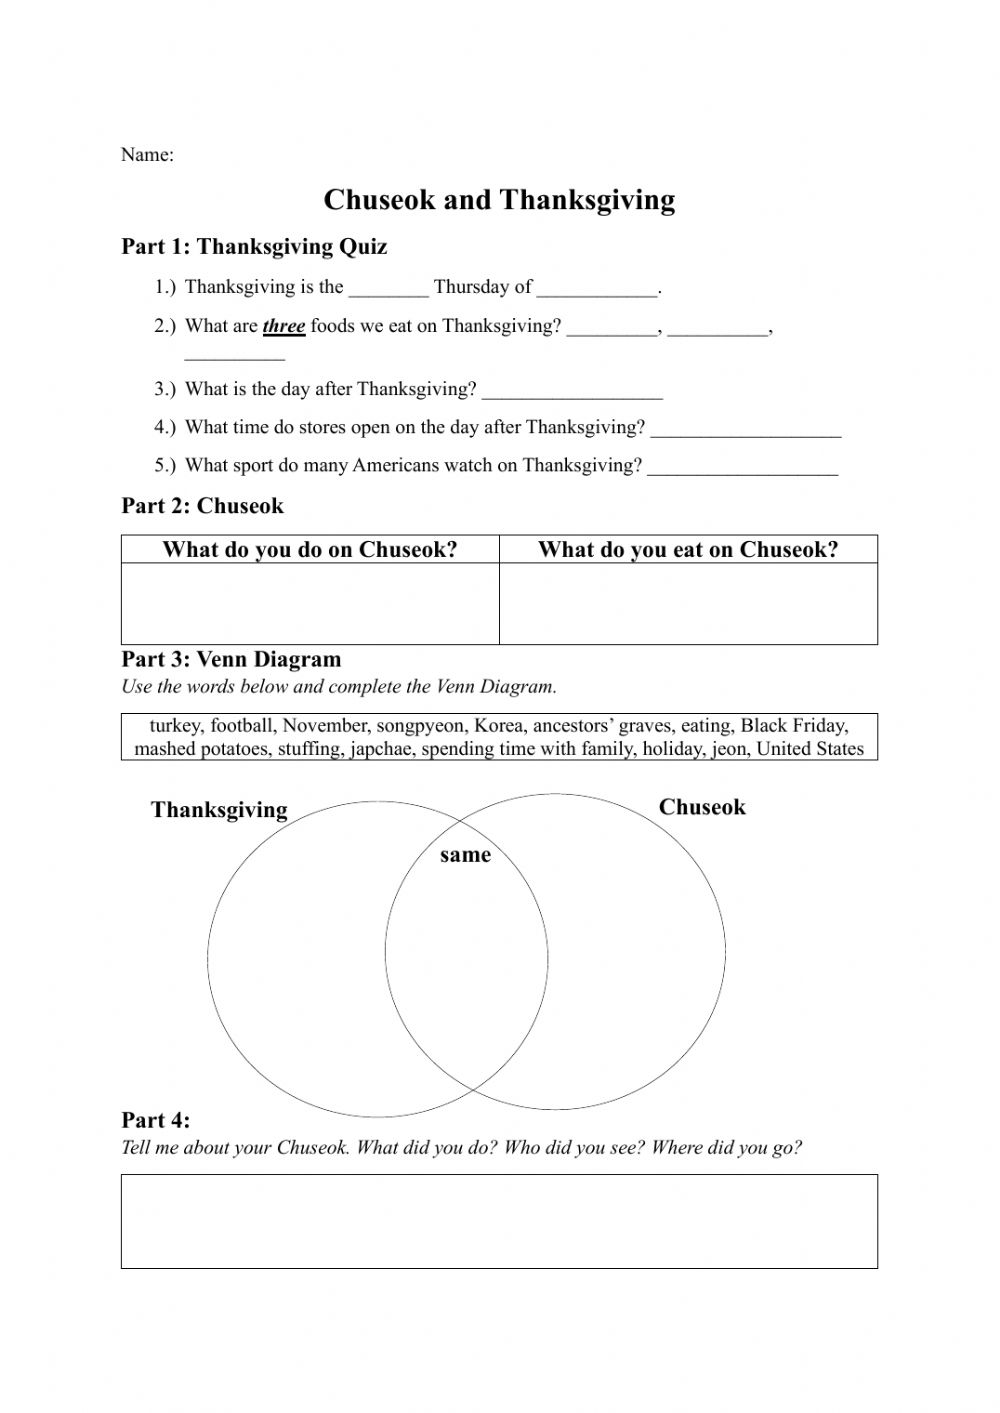 medium resolution of Chuseok \u0026 Thanksgiving worksheet